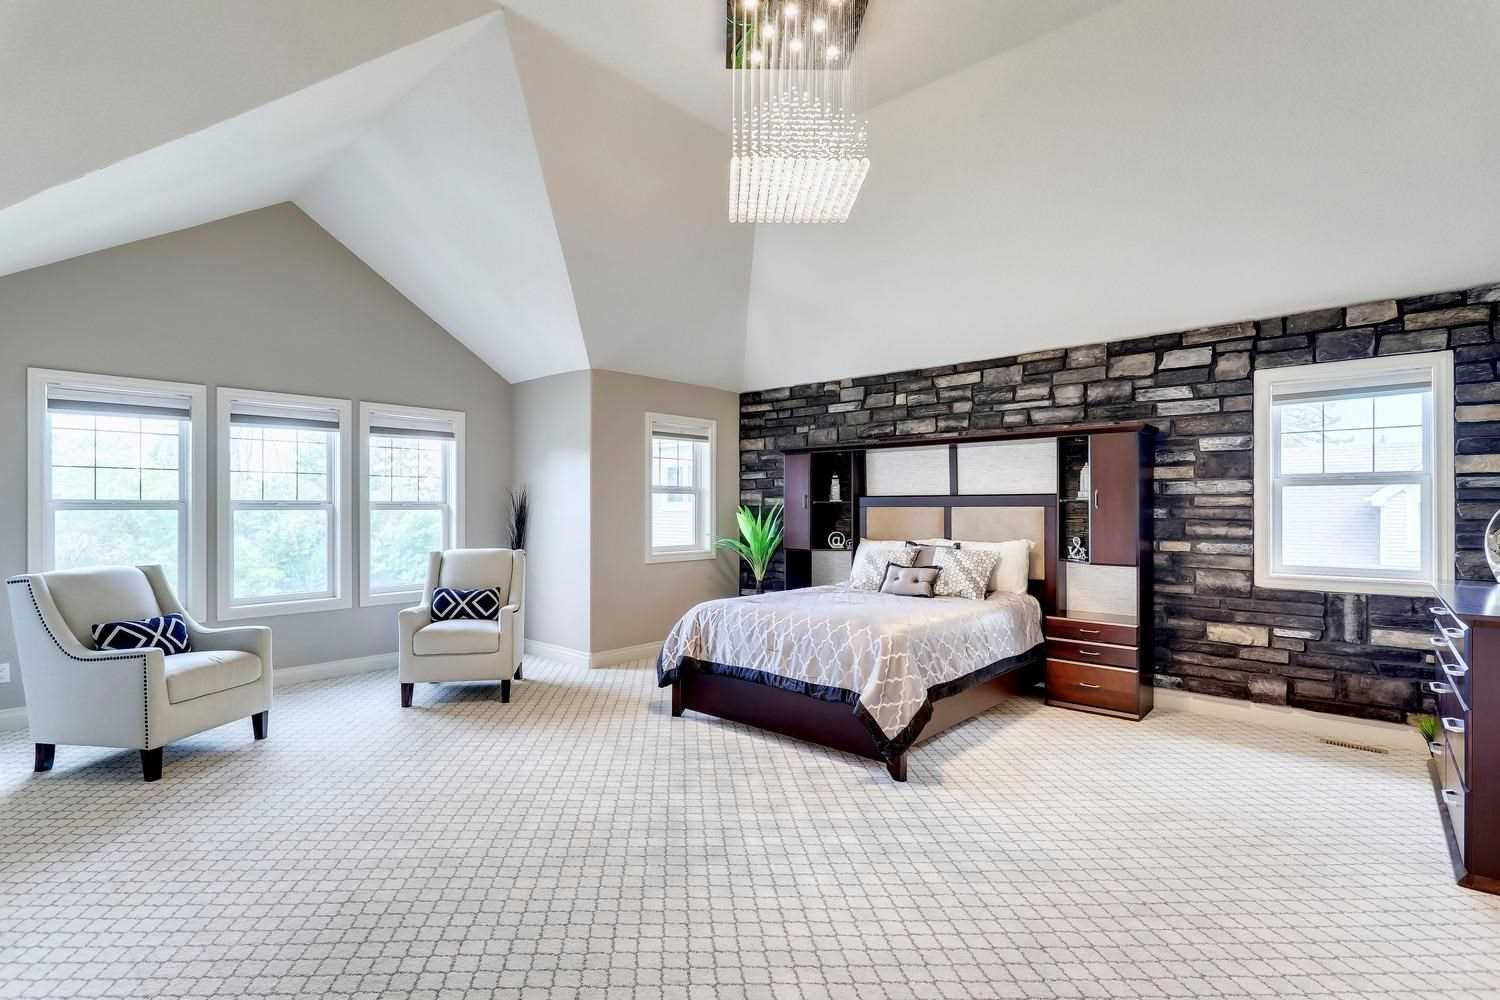 Master bedroom with white carpet, ceiling and walls; dark grey brick feature wall behind bed with cabinets built in to frame; two white chairs in front of windows to left; glass chandelier above